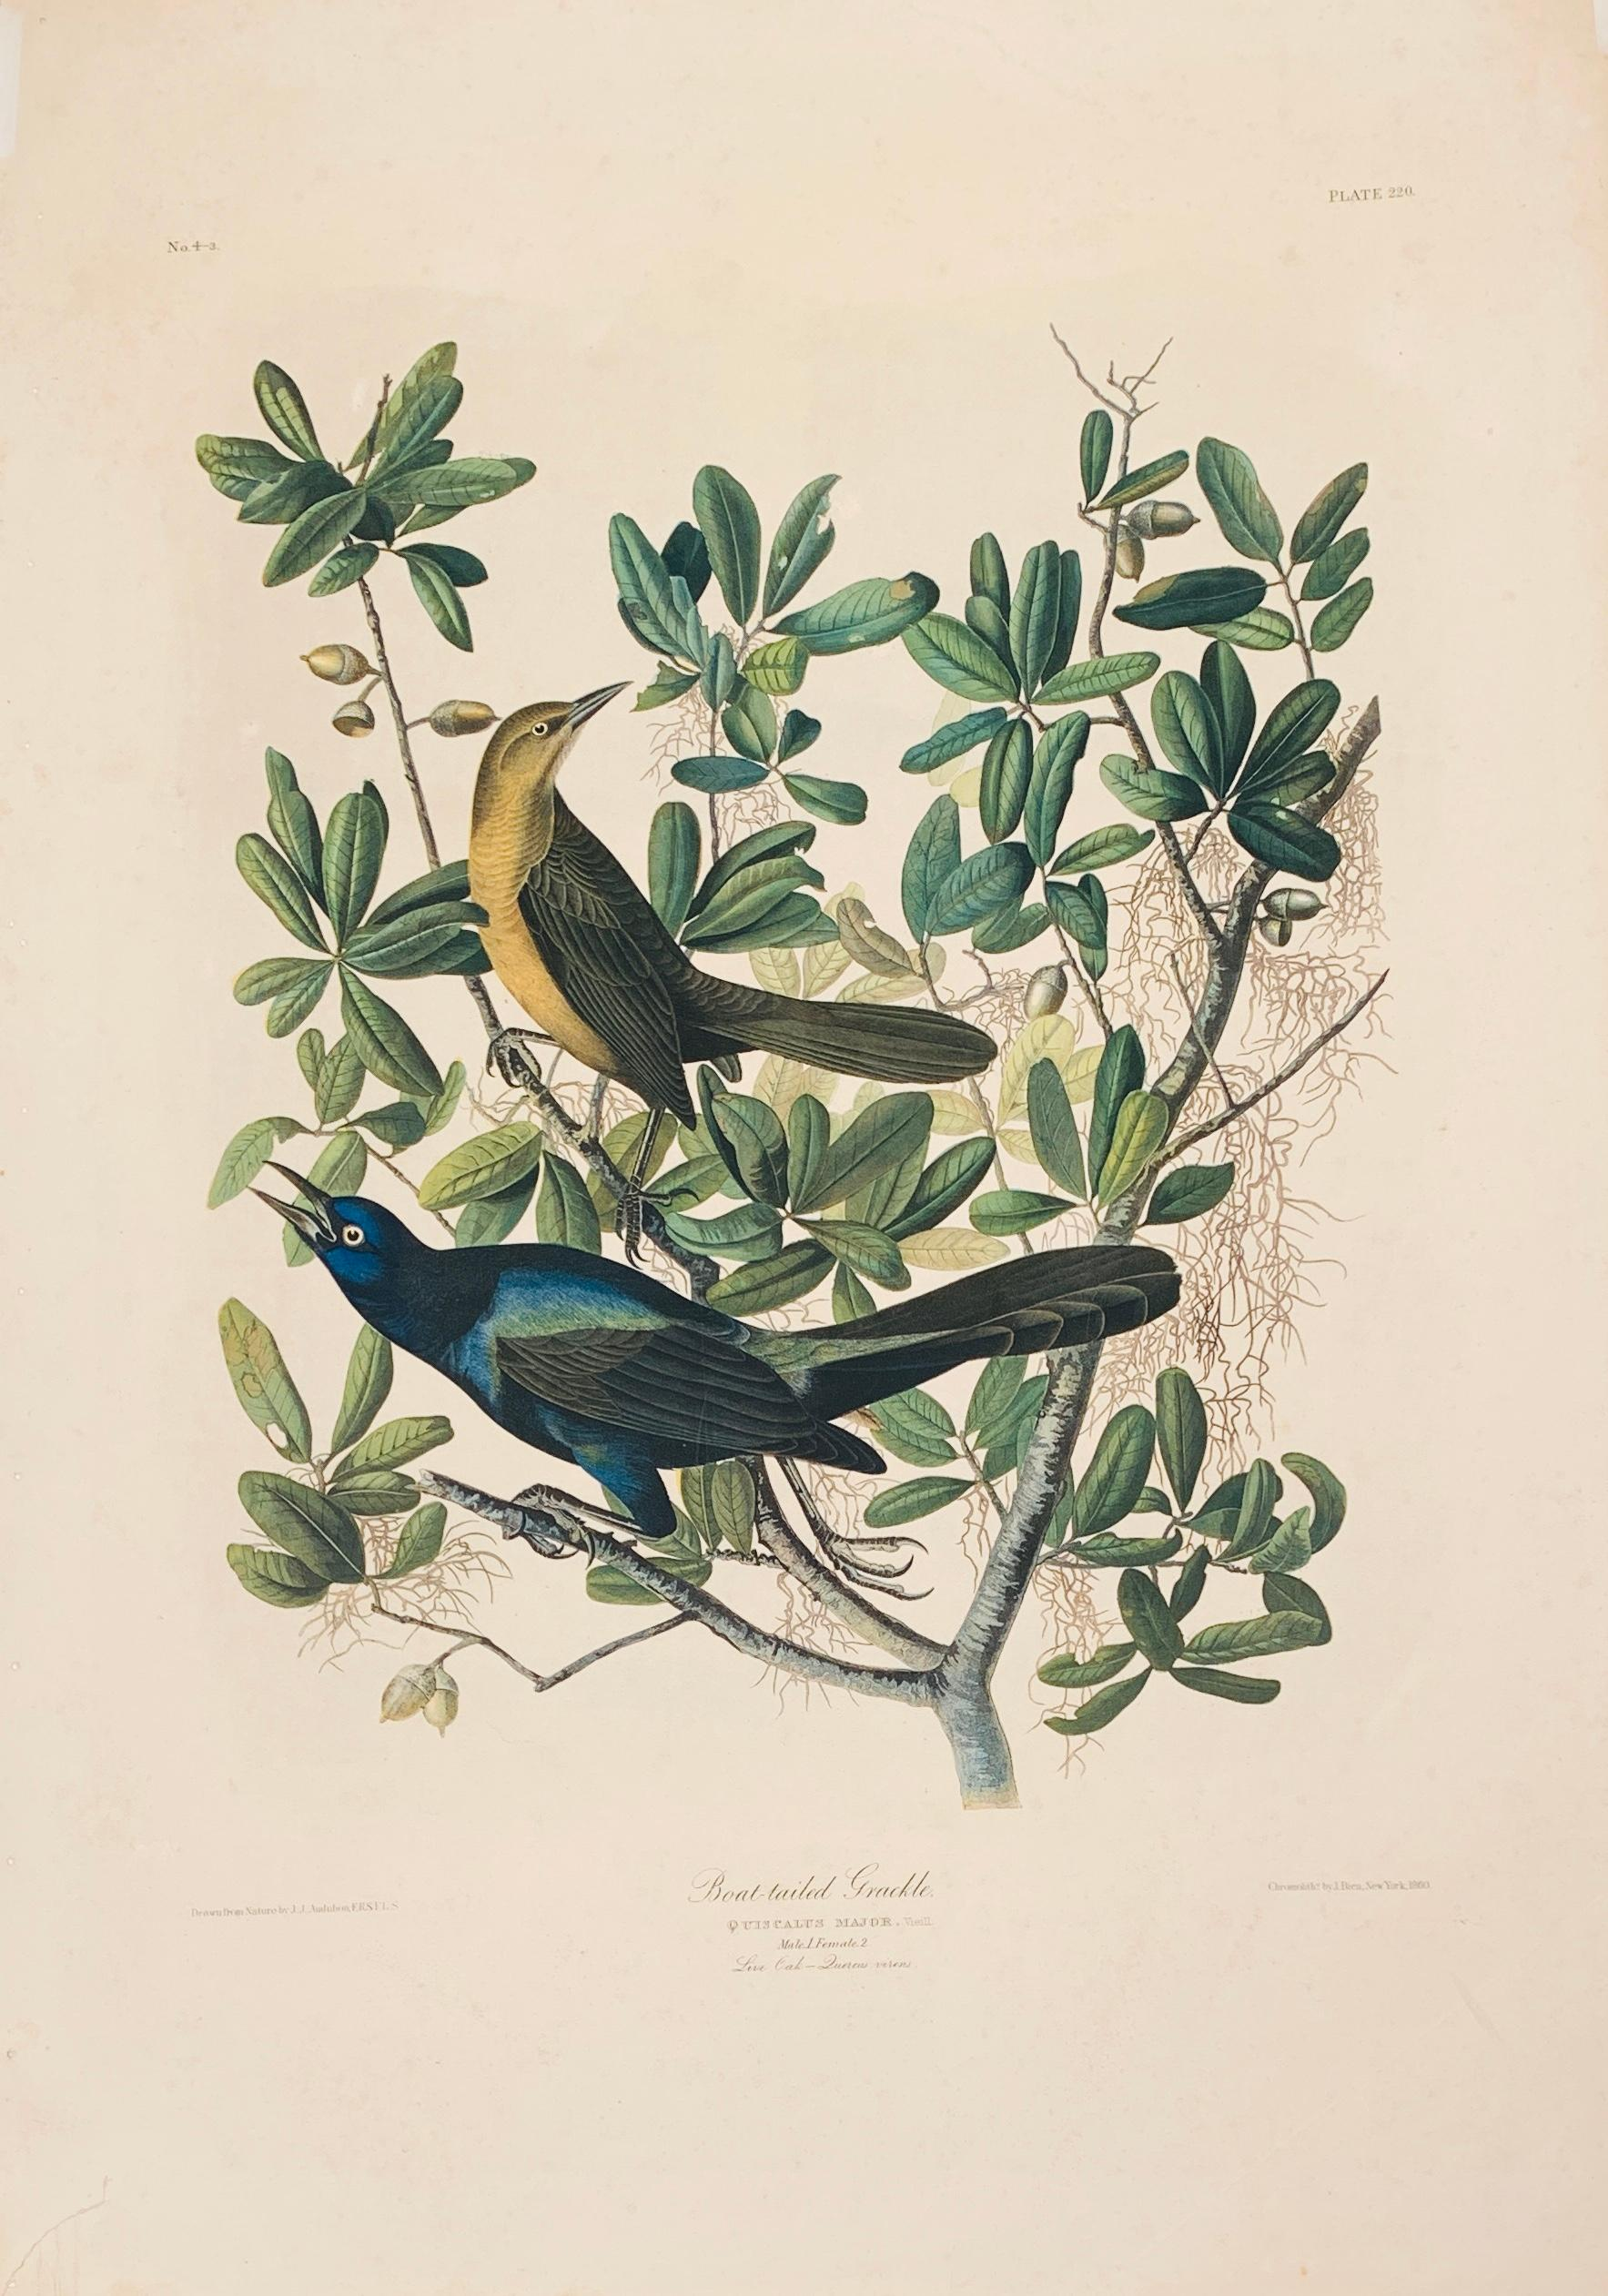 Boat-tailed Grackle, from the Bien edition of Birds of America